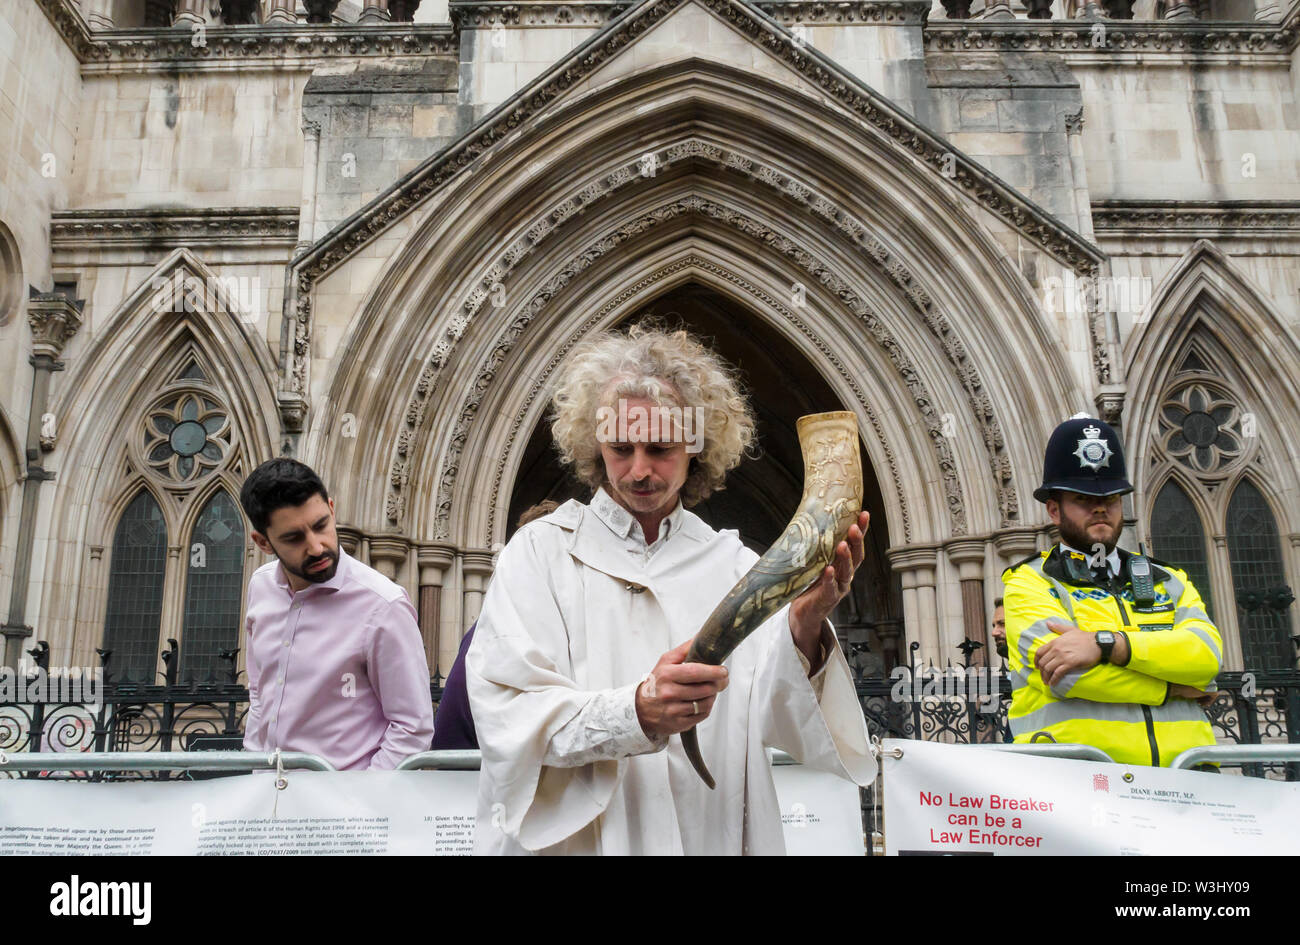 London, UK. 15th July 2019. A druid stands with a horn filled with water from across the countryin front of the courts in a ceremony against ecocide. Extinction Rebellion begins another series of protests in five major cities against the criminal inaction by the government on climate and ecological collapse. The protesters brought a yacht named after Polly Higgins who fought for years for an Ecocide Law to the Royal Courts of Justice and continued her fight blocking the Strand all day with performances, discussions, speeches, music and ceremonies in front of the yacht. Peter Marshall/Alamy Liv - Stock Image